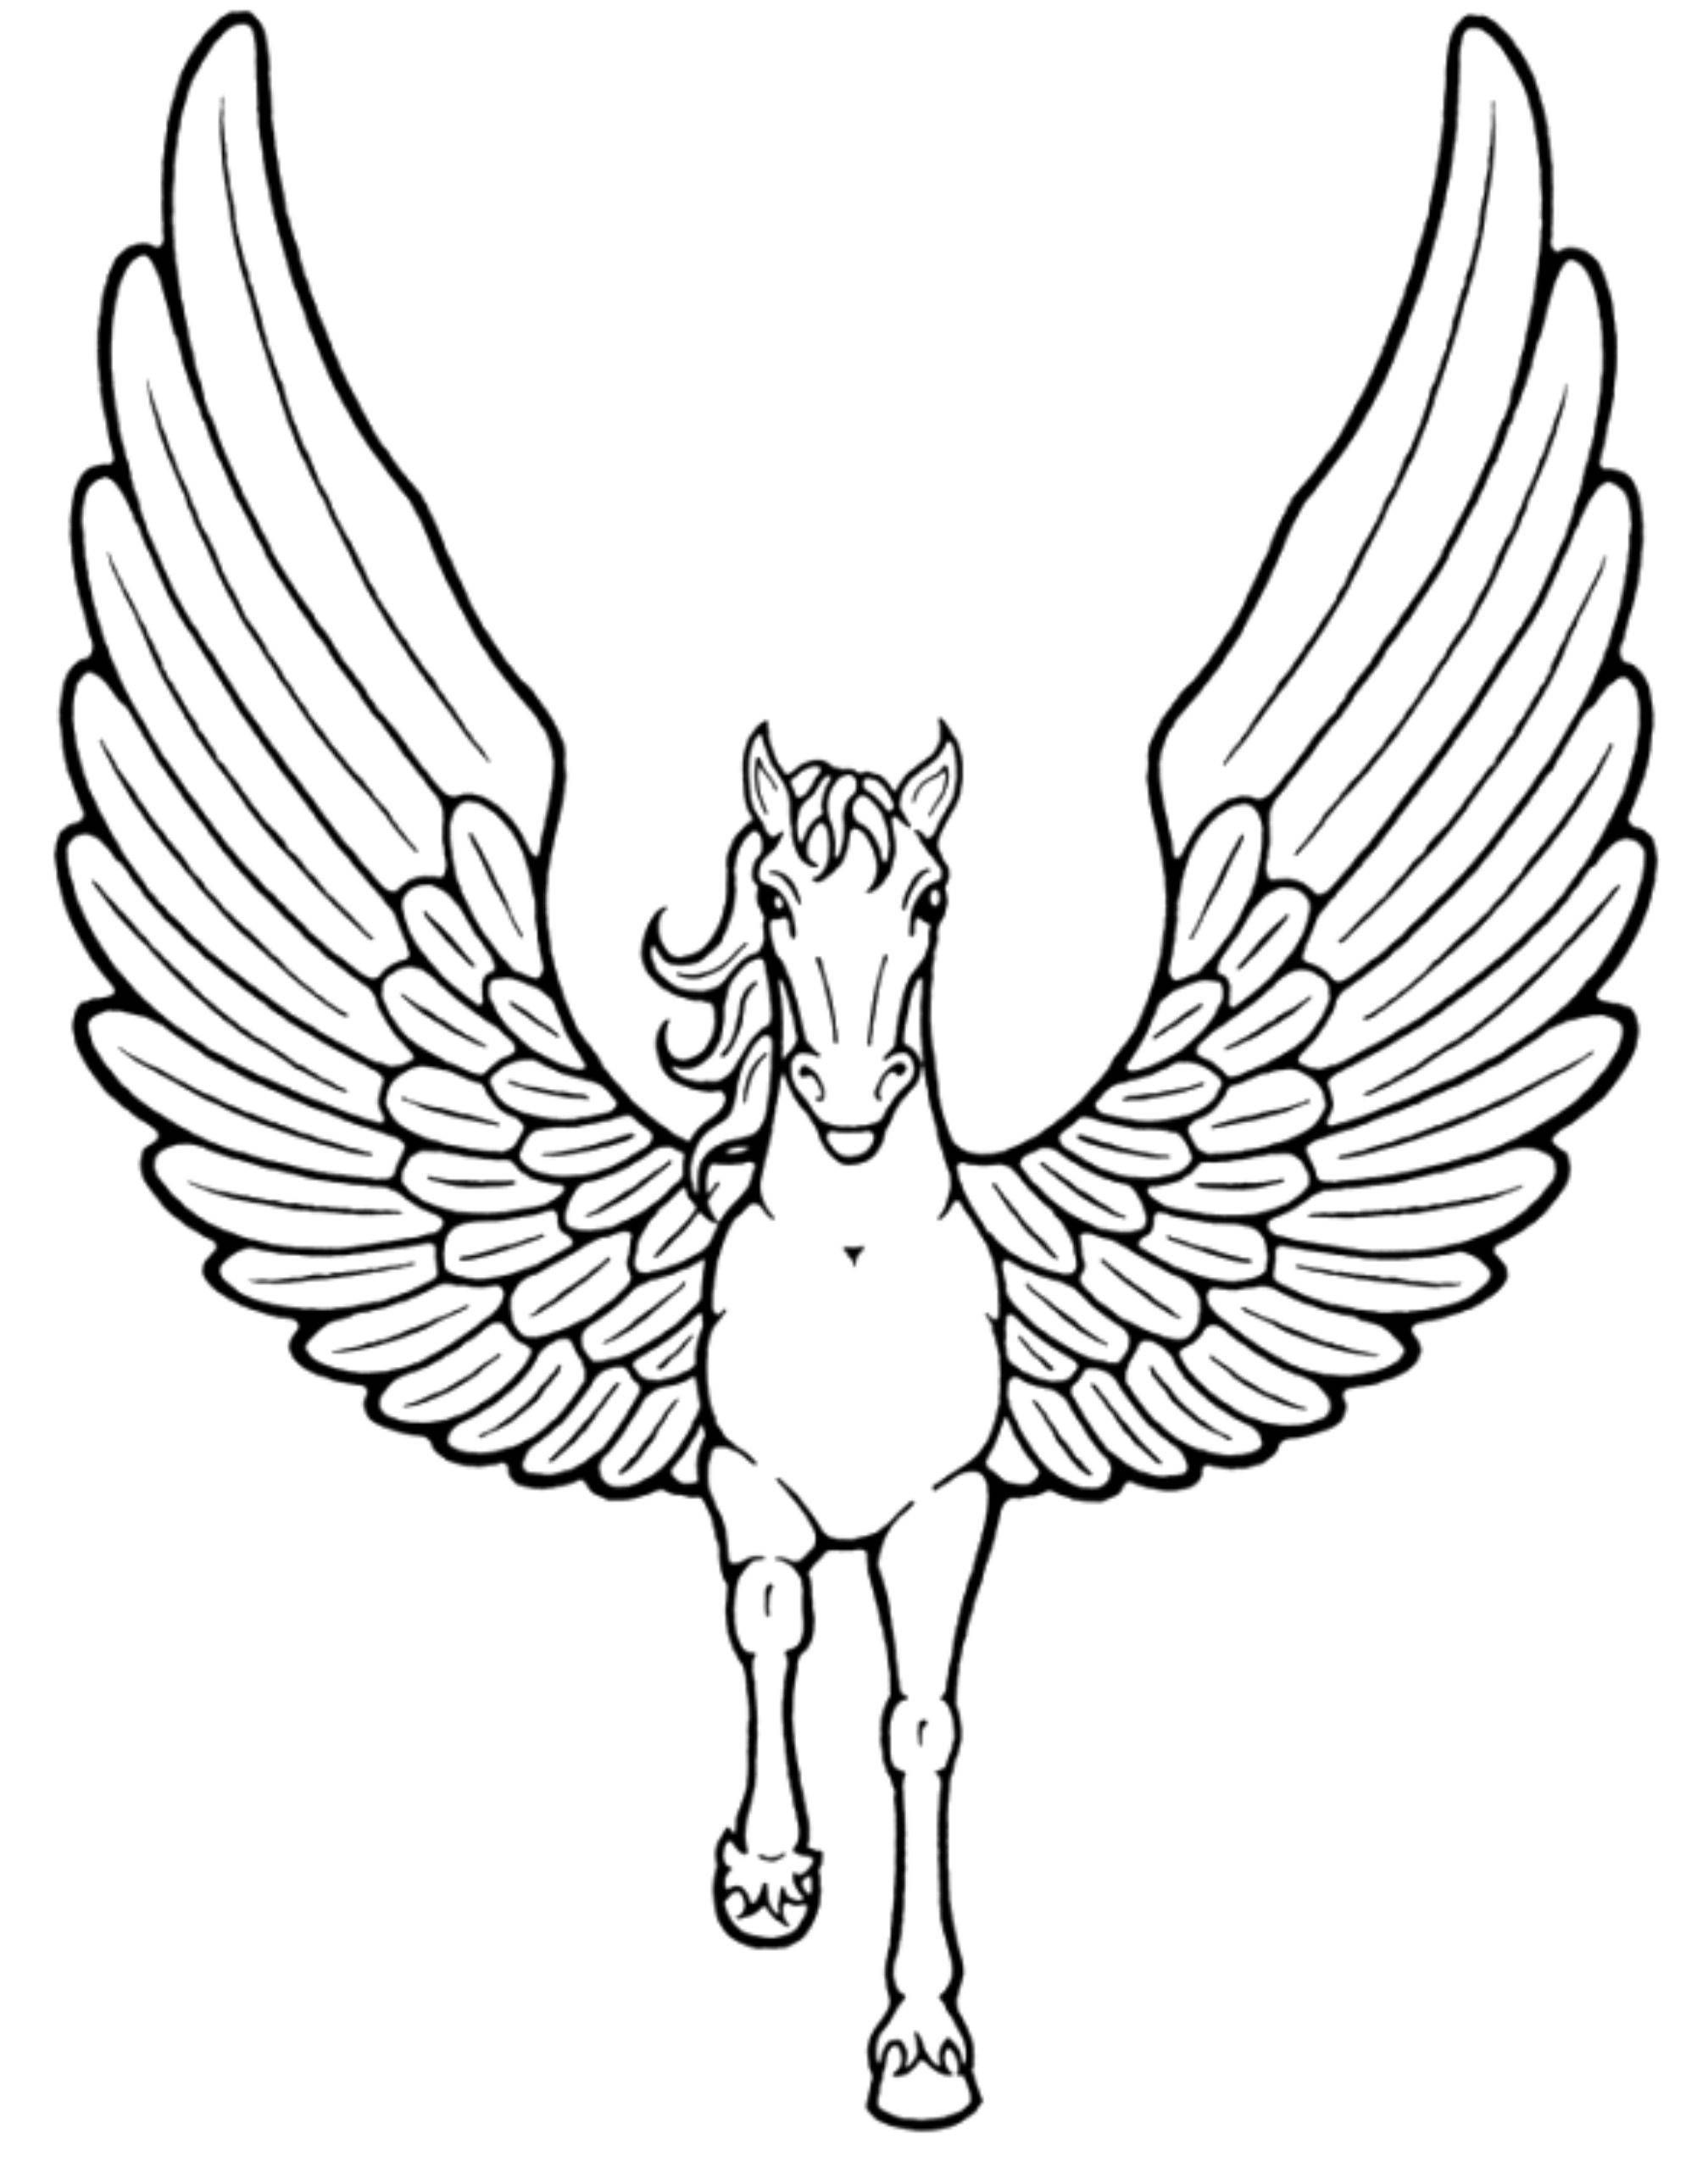 Easy Coloring Pages Pdf : Easy unicorn coloring pages printable kids colouring